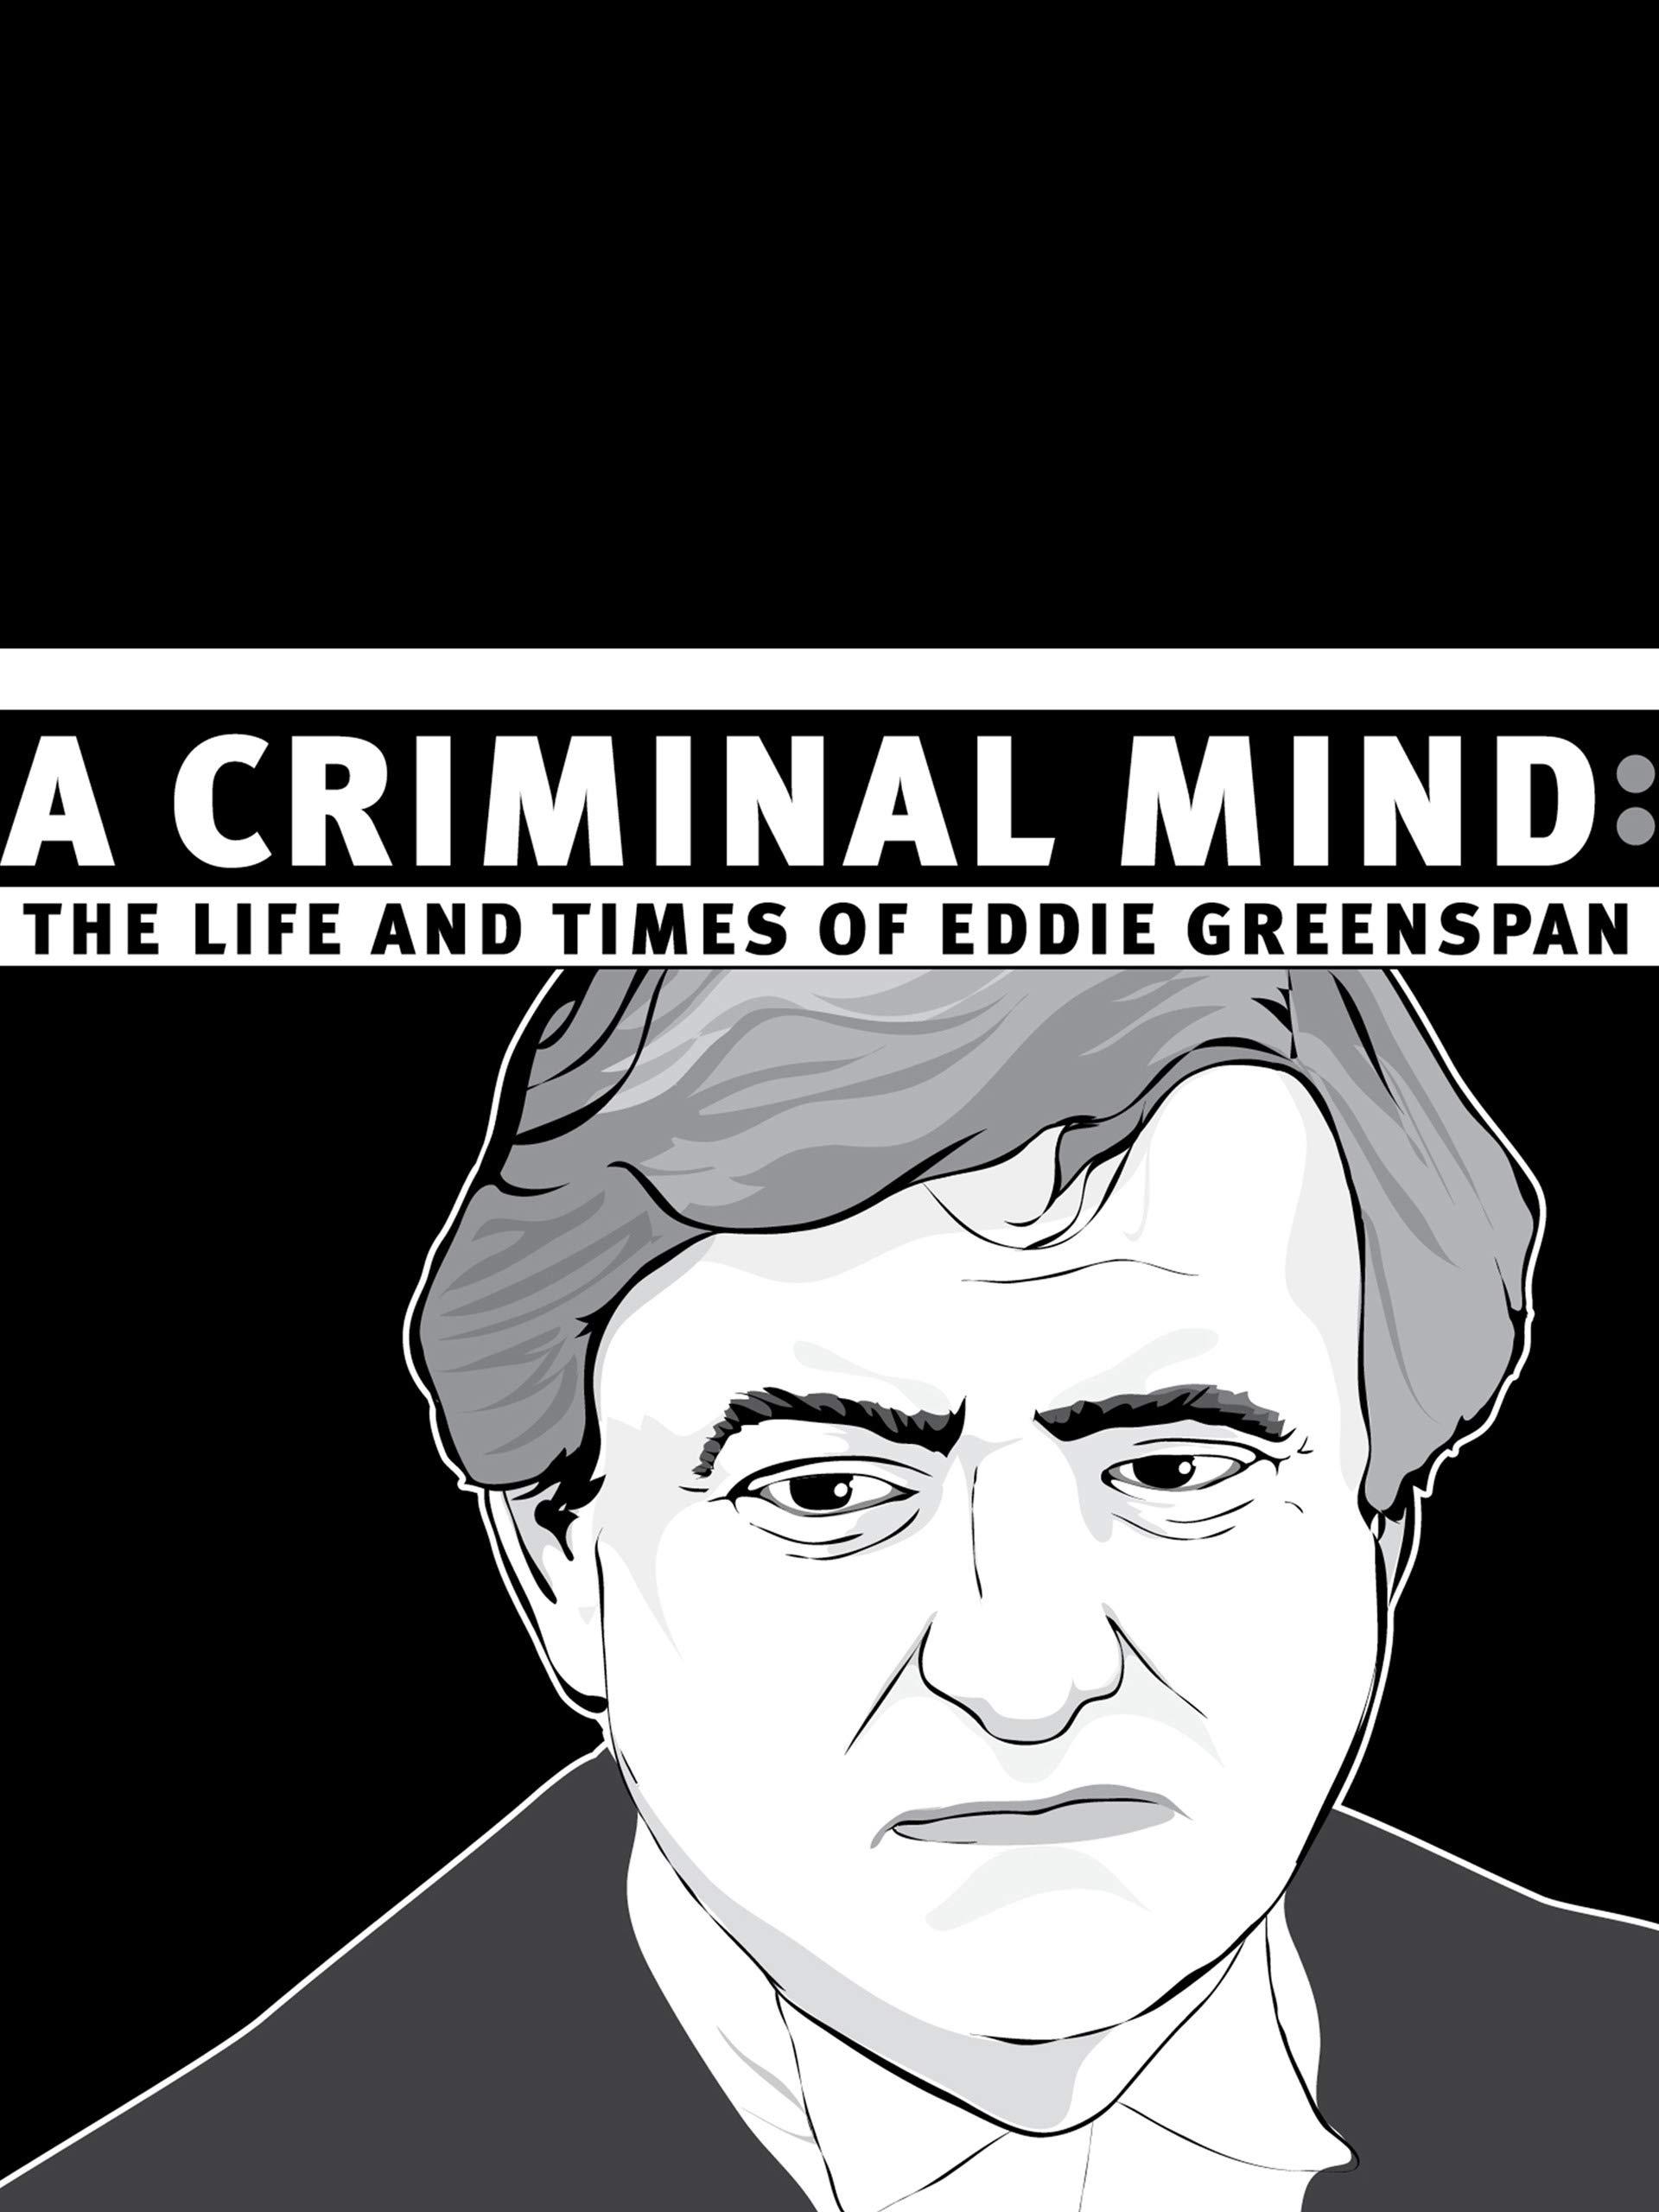 A Criminal Mind: The Life and Times of Edward Greenspan